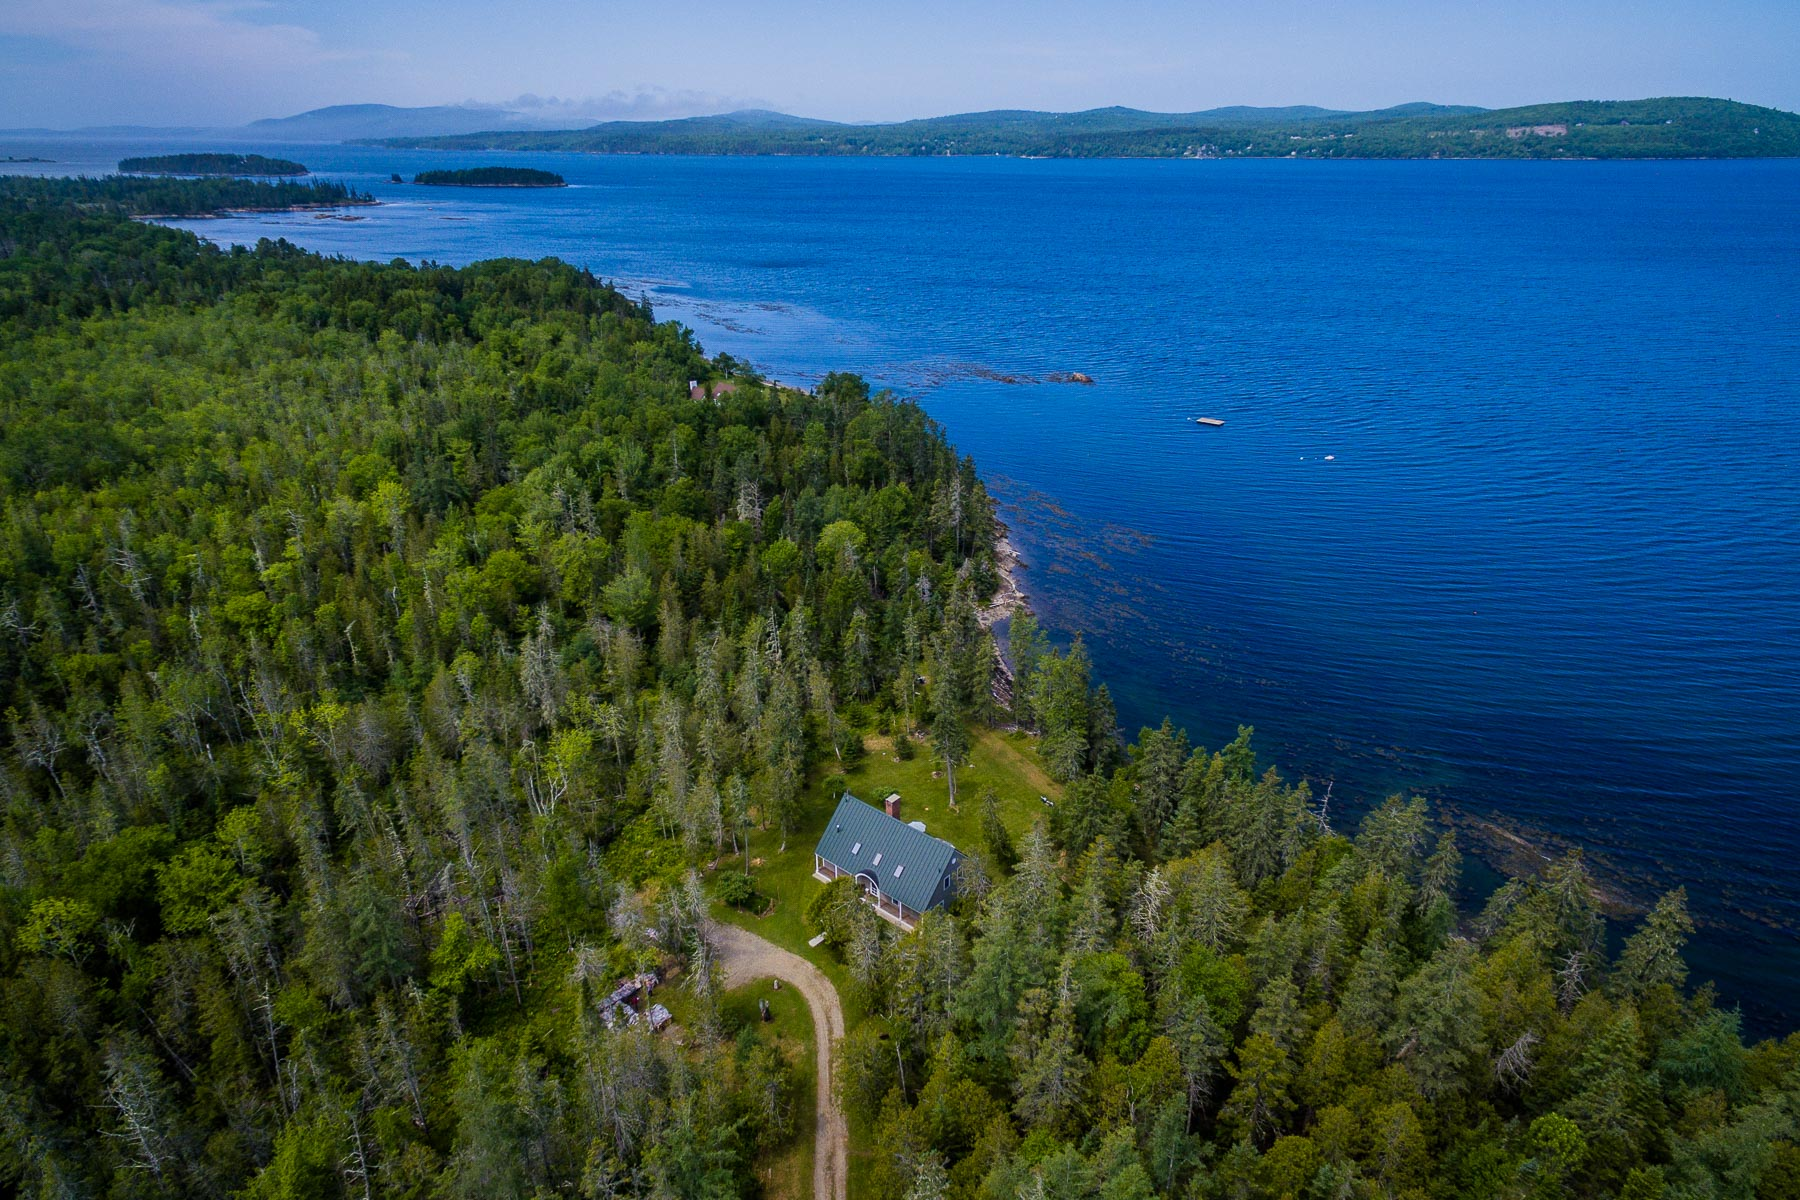 Single Family Home for Sale at 143 Sprague Cove Lane Islesboro, Maine 04848 United States